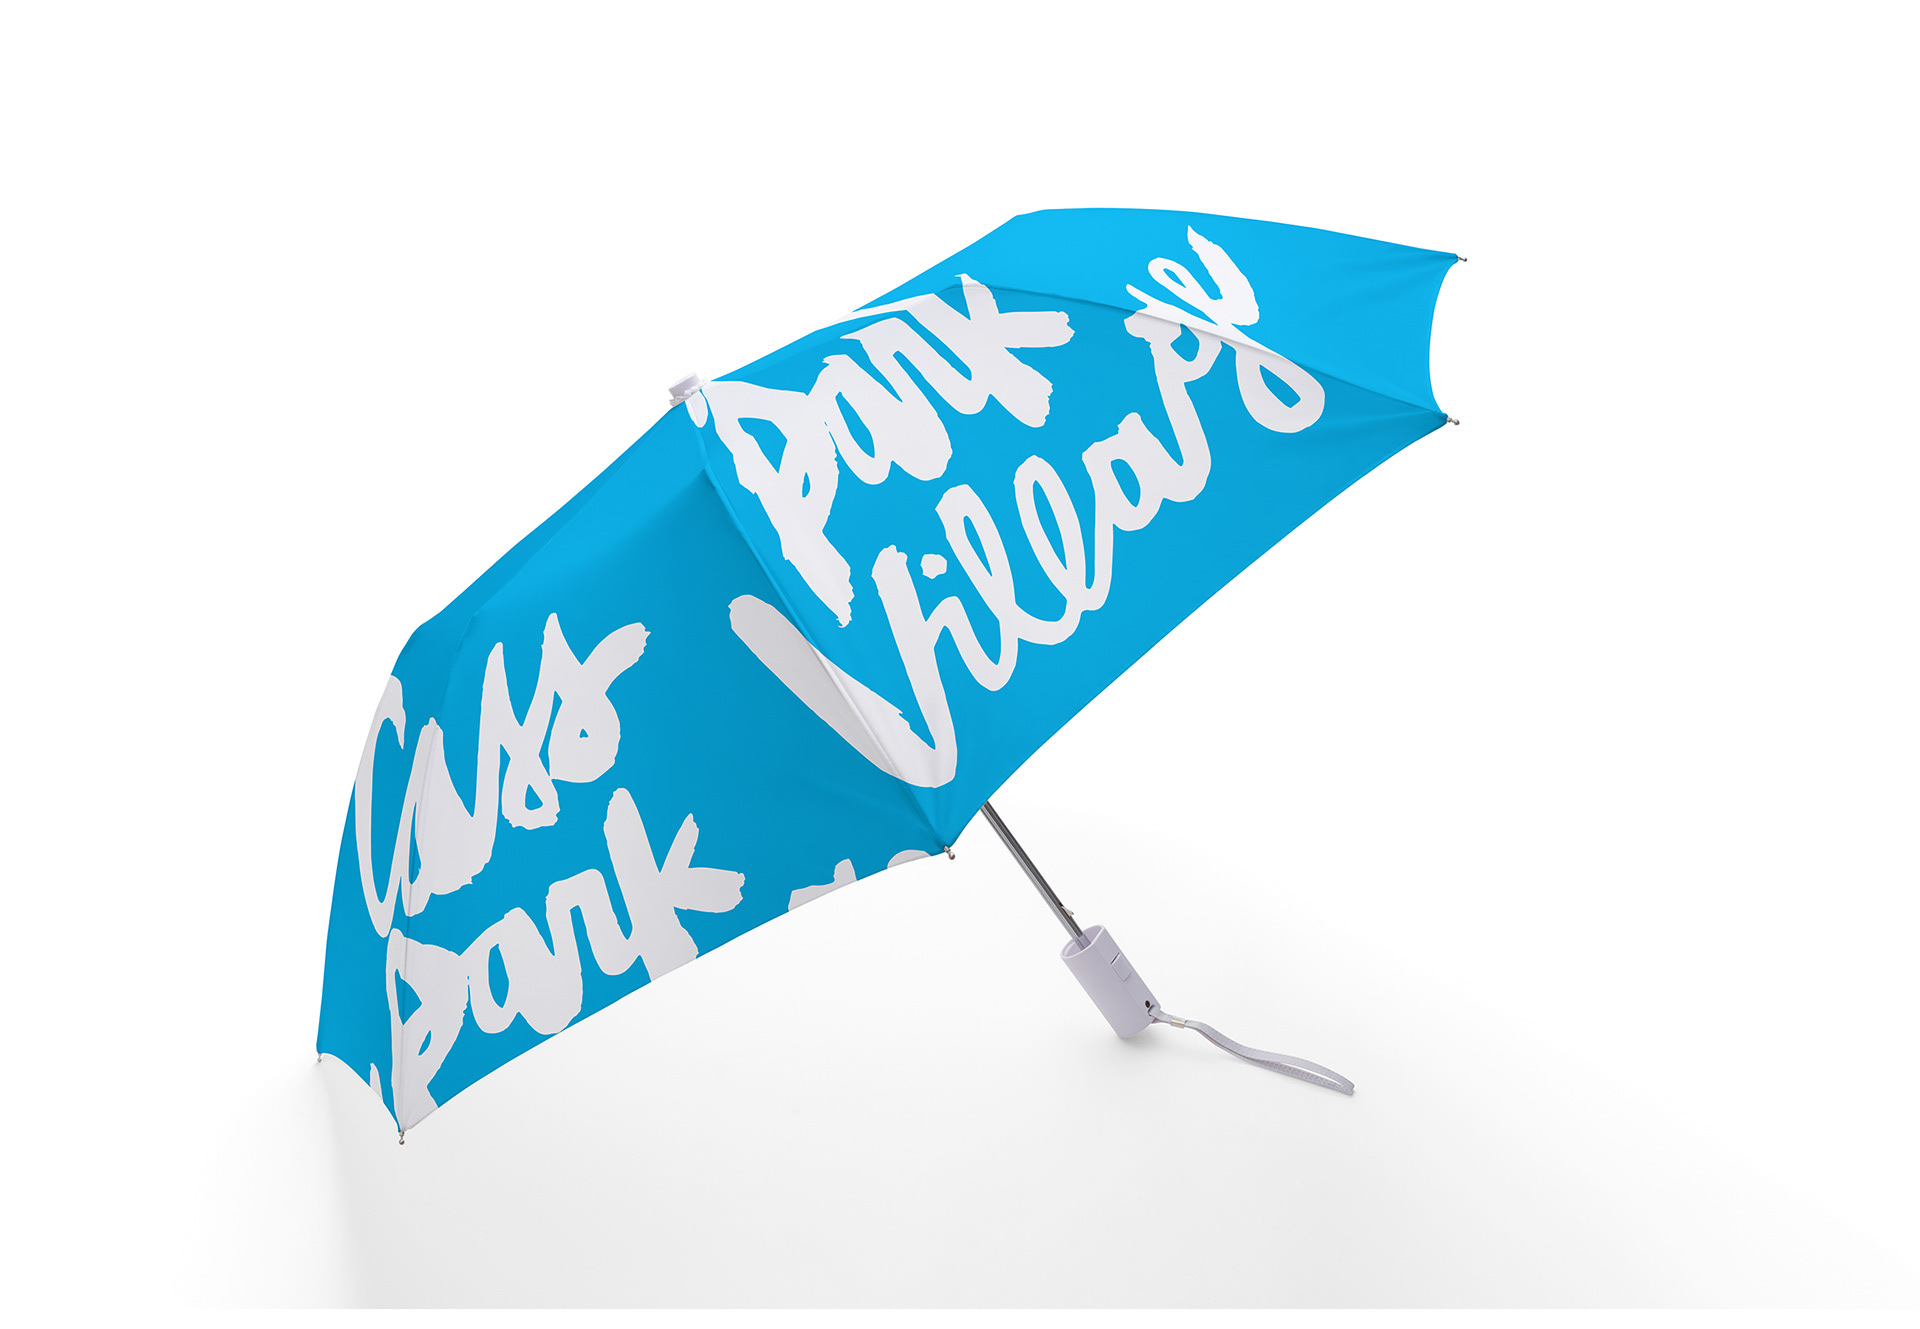 cass-park-village-umbrella.jpg